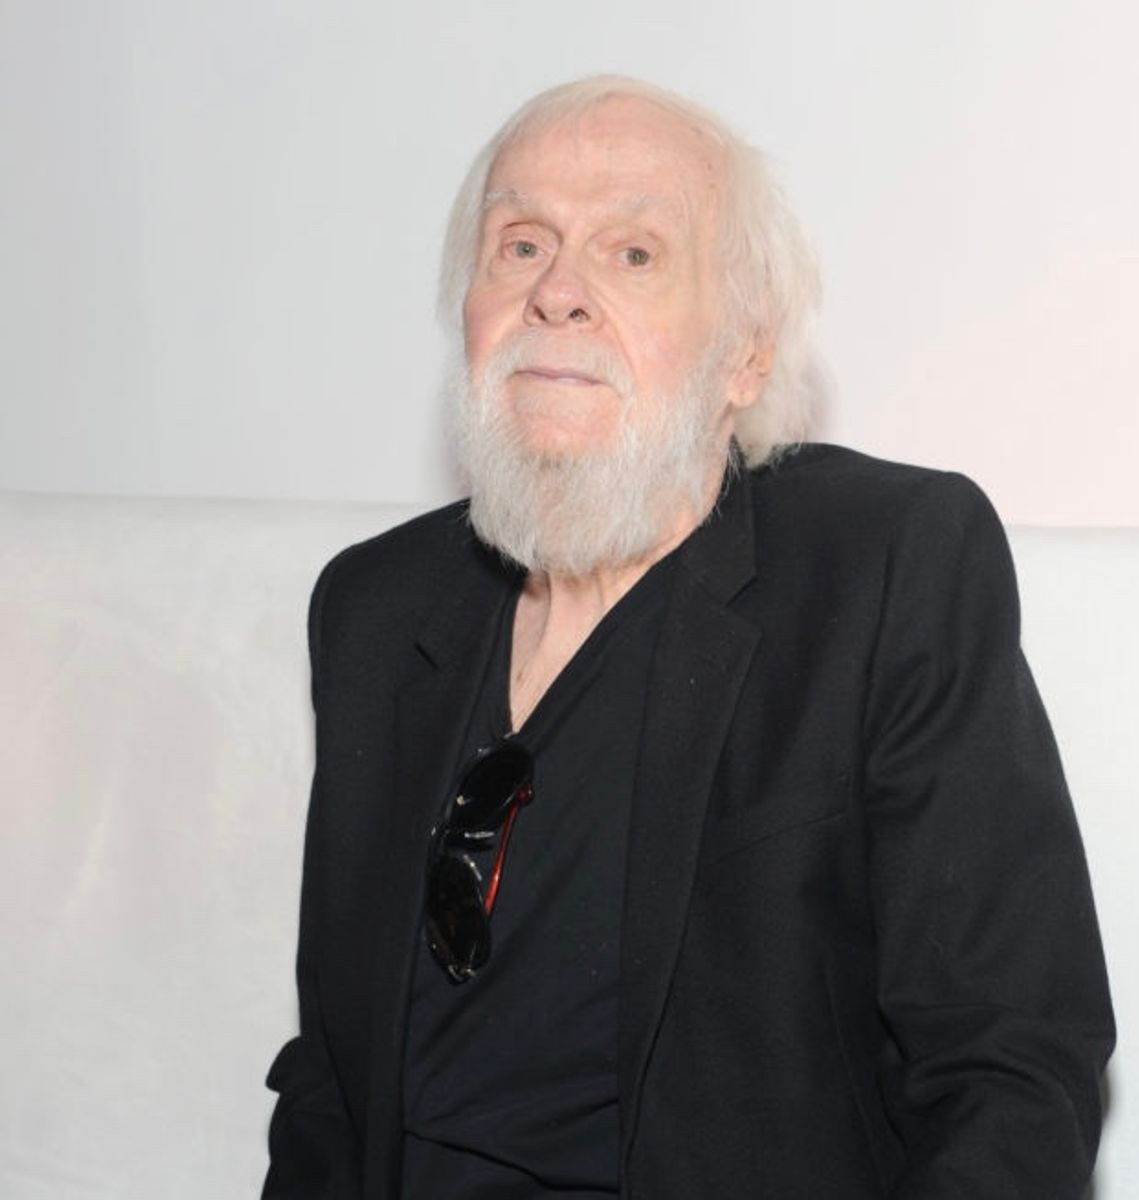 John Baldessari, the Wry Teacher Who Became a Path-Breaking Pioneer of Conceptual Art, Has Died at 88